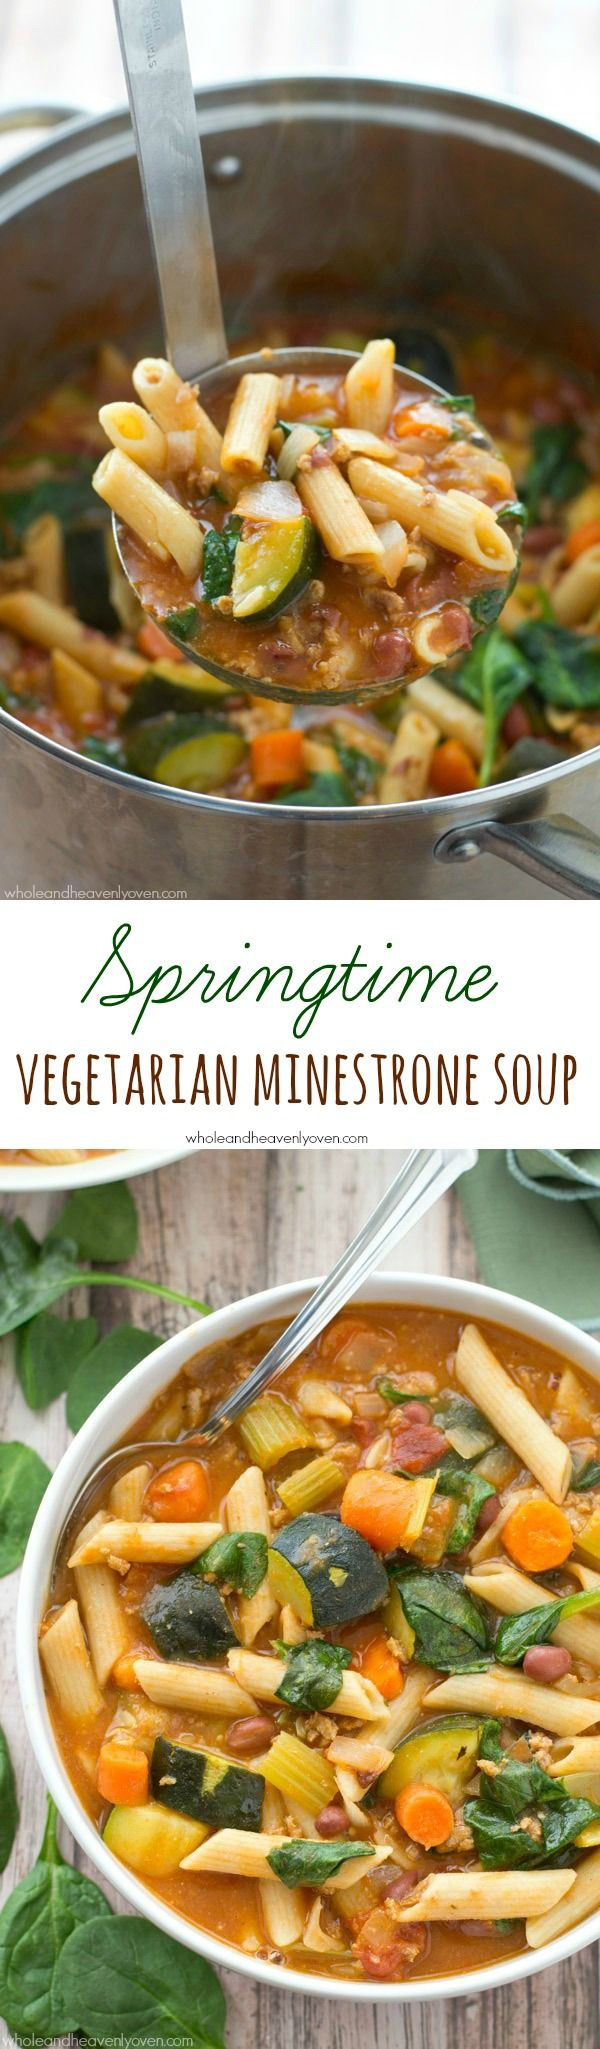 Cook up a hit for meatless Monday with this springtime vegetarian minestrone soup packed with spring veggies. Click in to read Whole and Heavenly Oven's recipe for this comforting vegetarian minestrone soup.